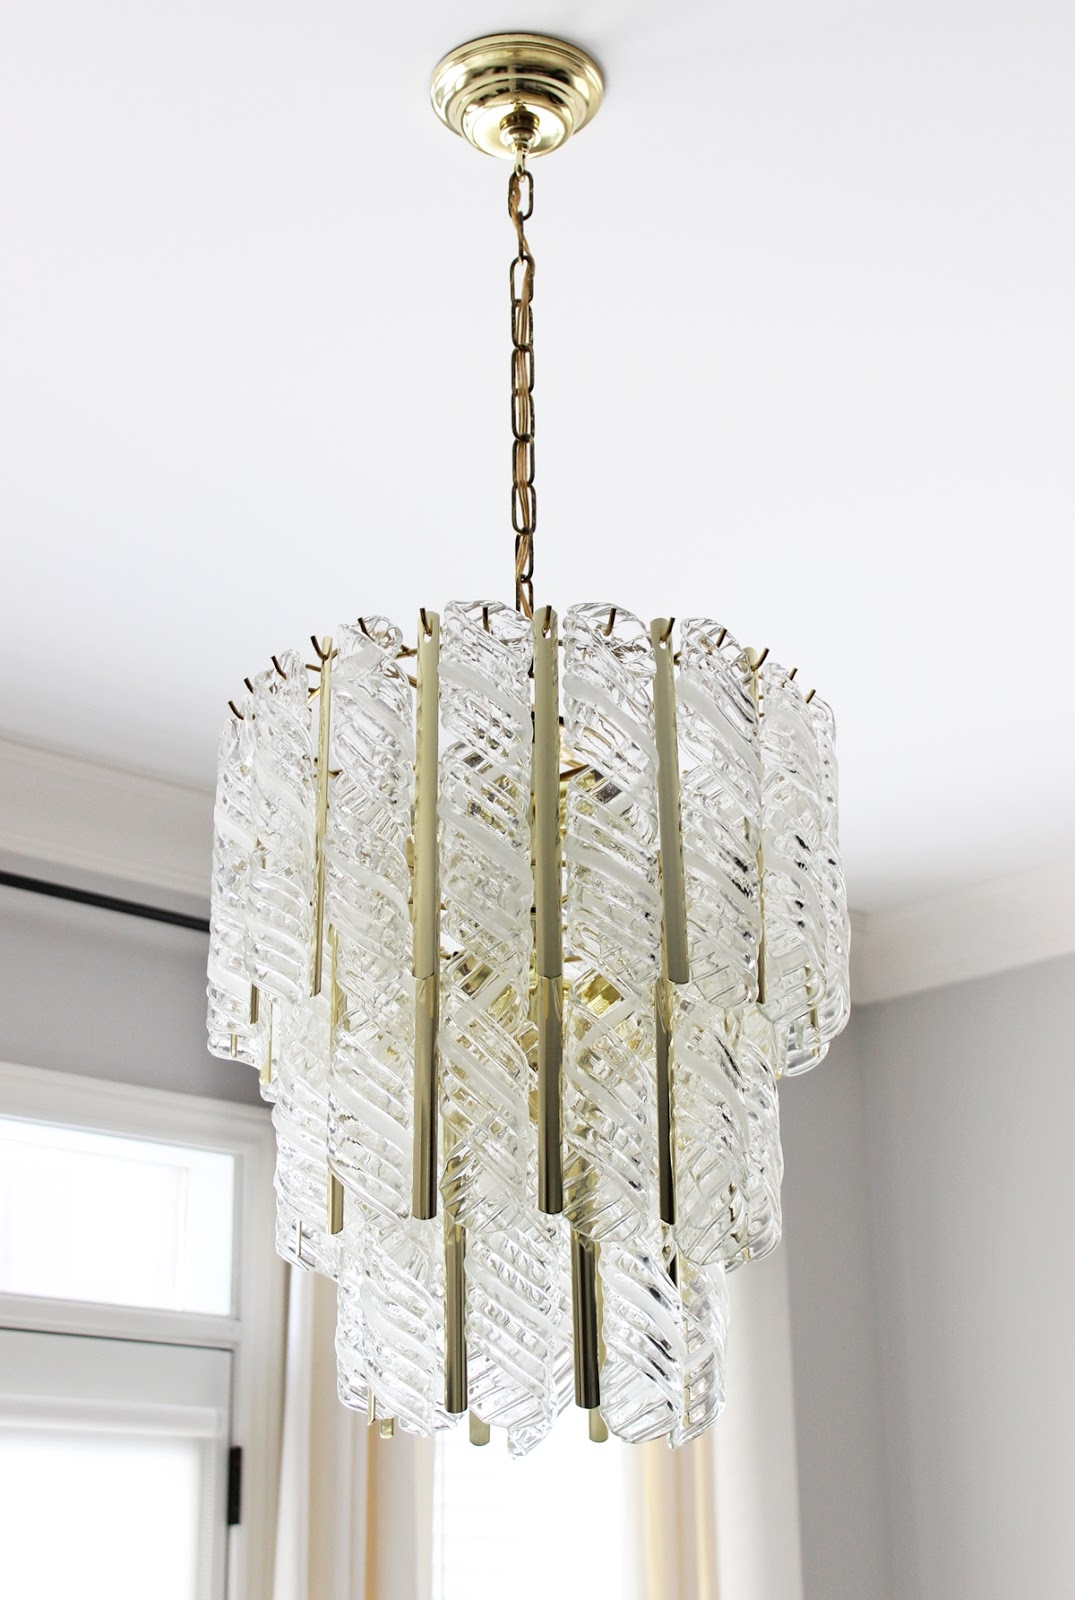 Vintage Venini Murano Glass Chandelier Am Dolce Vita Pinterest Inside Murano Chandelier Replica (#12 of 12)